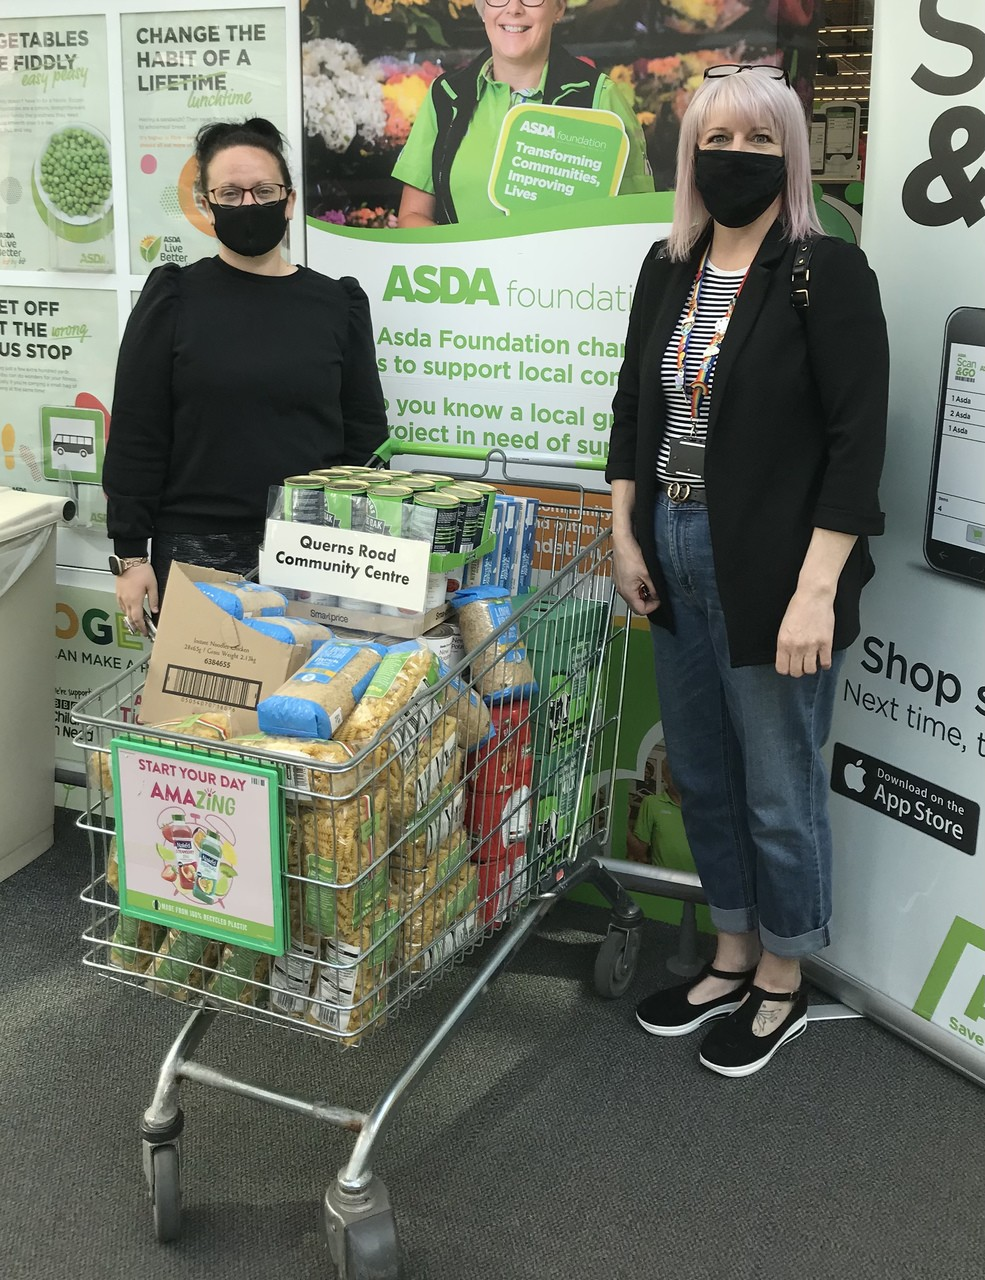 Supporting our local community centres | Asda Canterbury